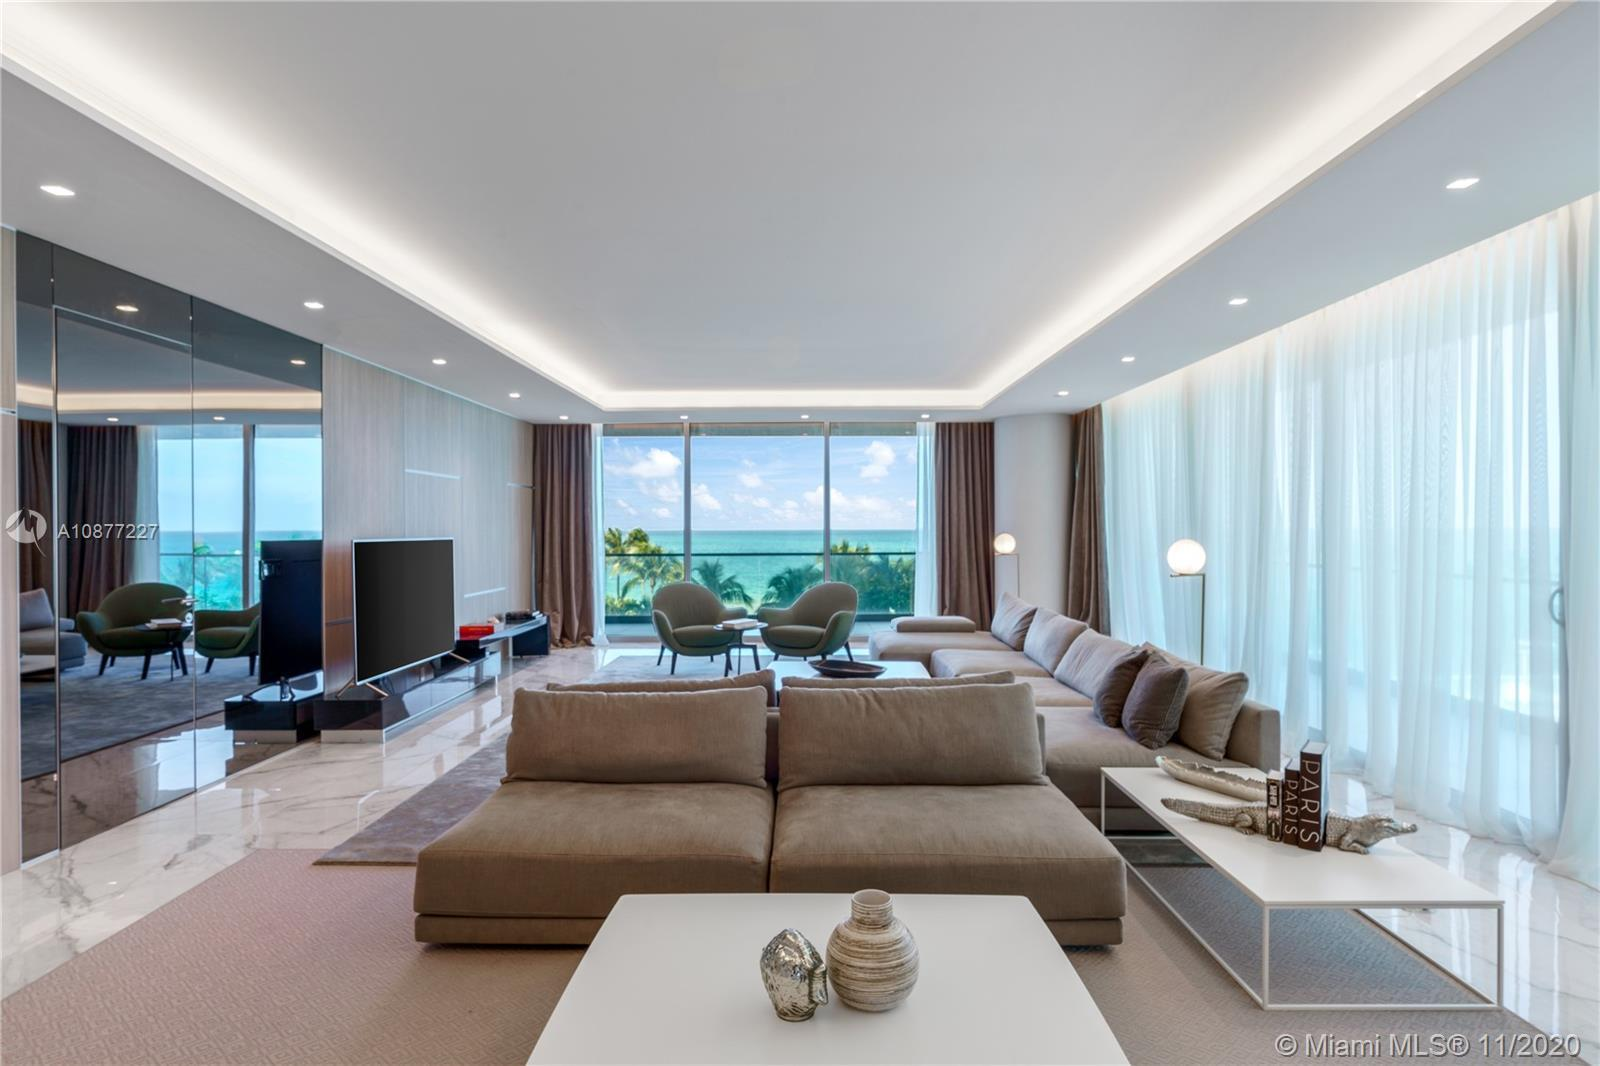 Breathtaking oceanfront residence with endless ocean views, located at Oceana Bal Harbour. This cust